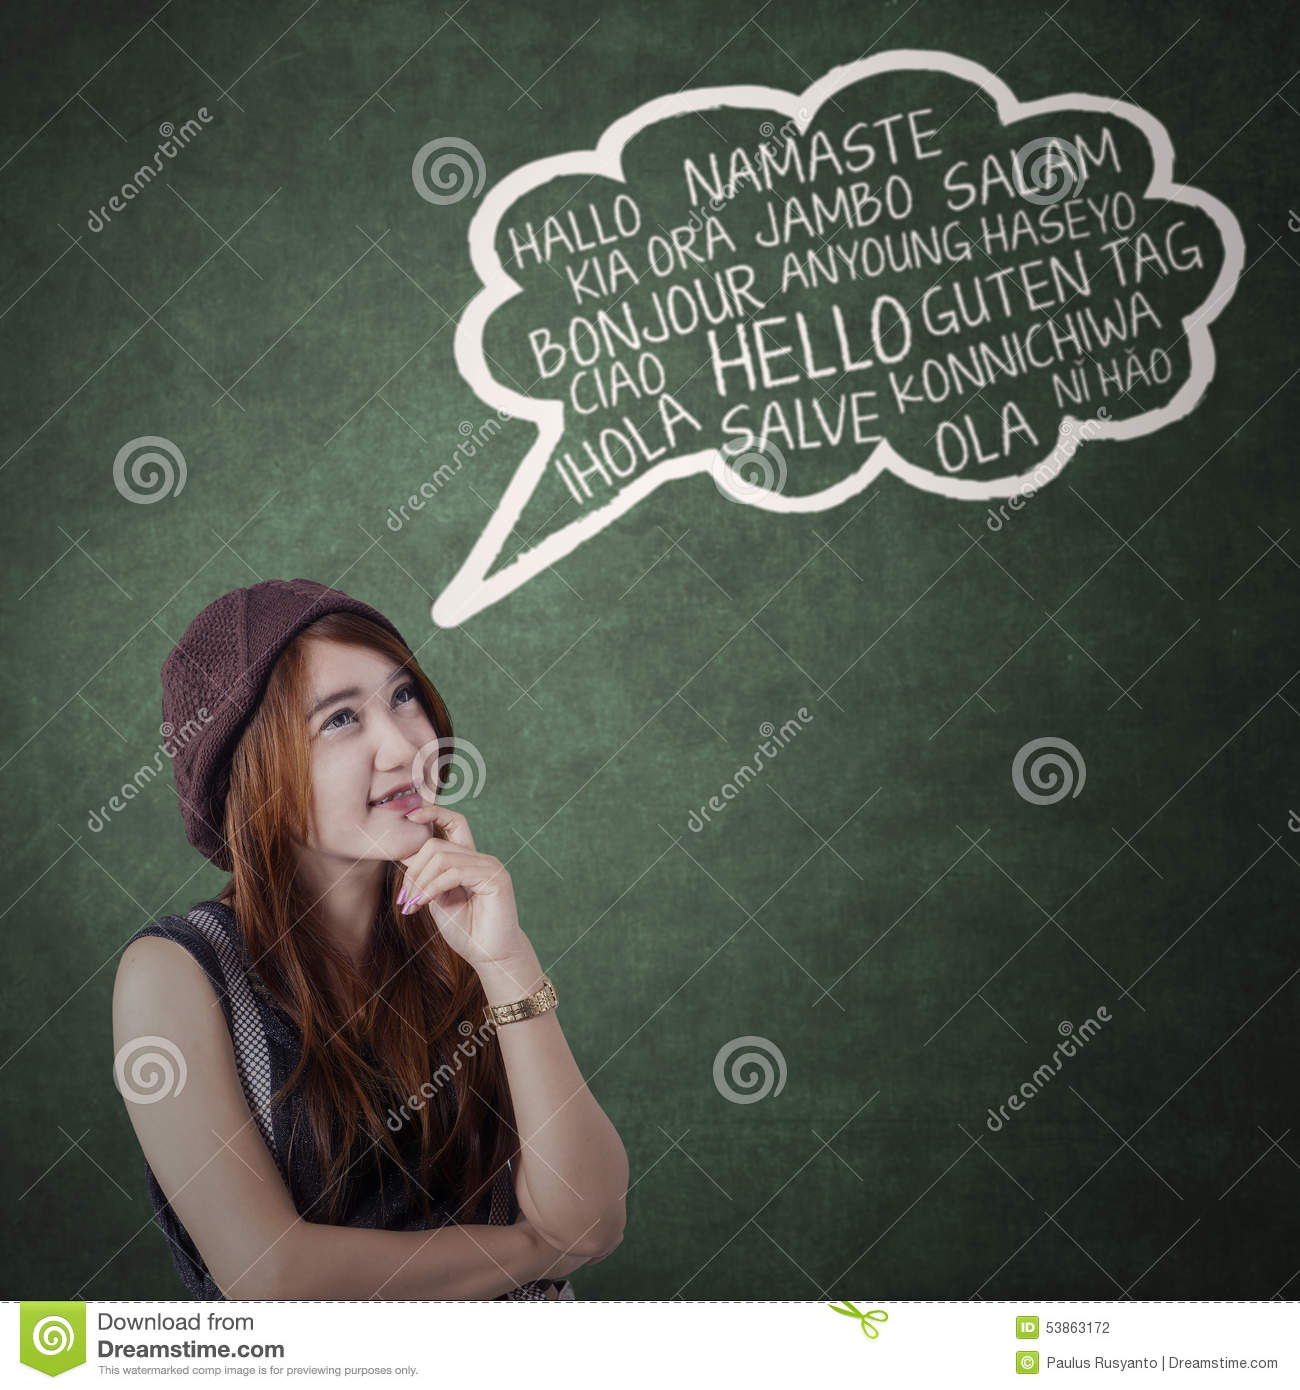 Whats the easiest language to learn? | Yahoo Answers